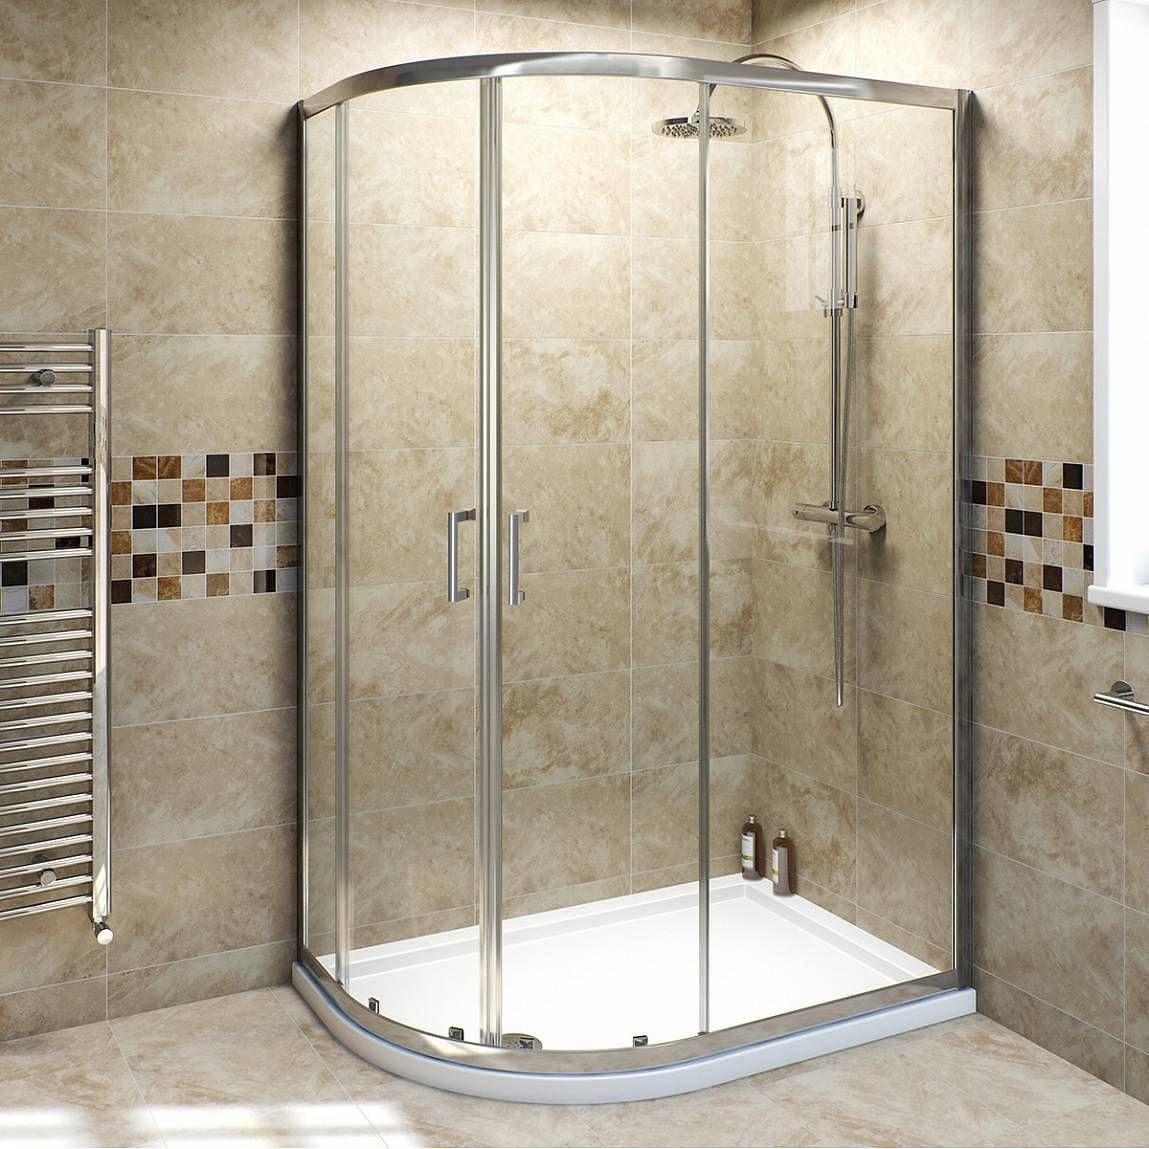 Bathroom Lights Victoria Plumb v6 6mm quadrant offset shower enclosure 1000 x 800 - victoria